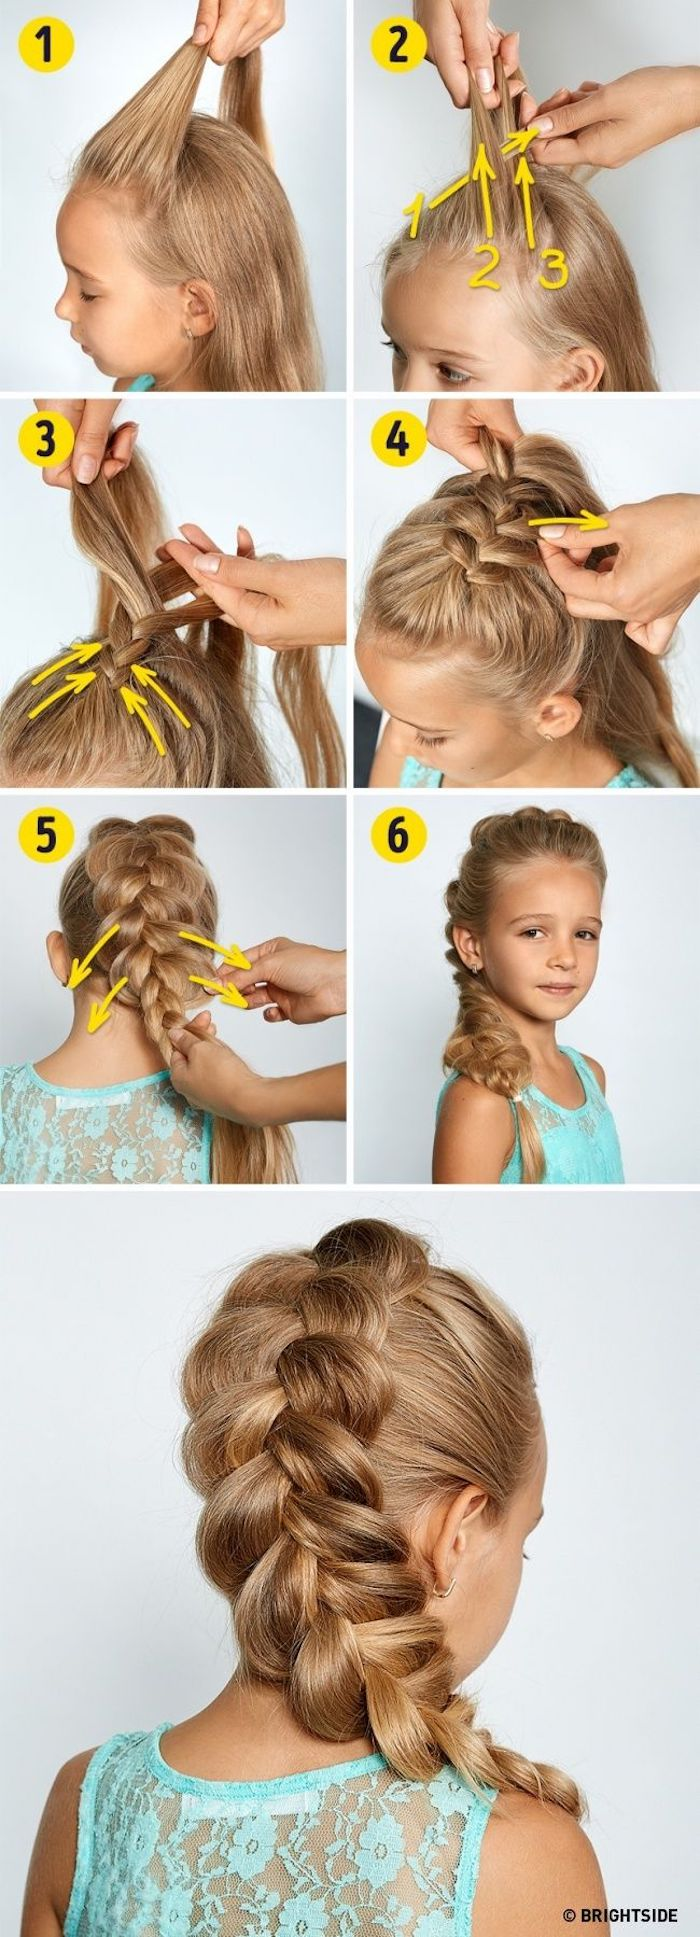 turquoise top, white background, braided hairstyles for little girls, step by step tutorial, long blonde hair in a braid